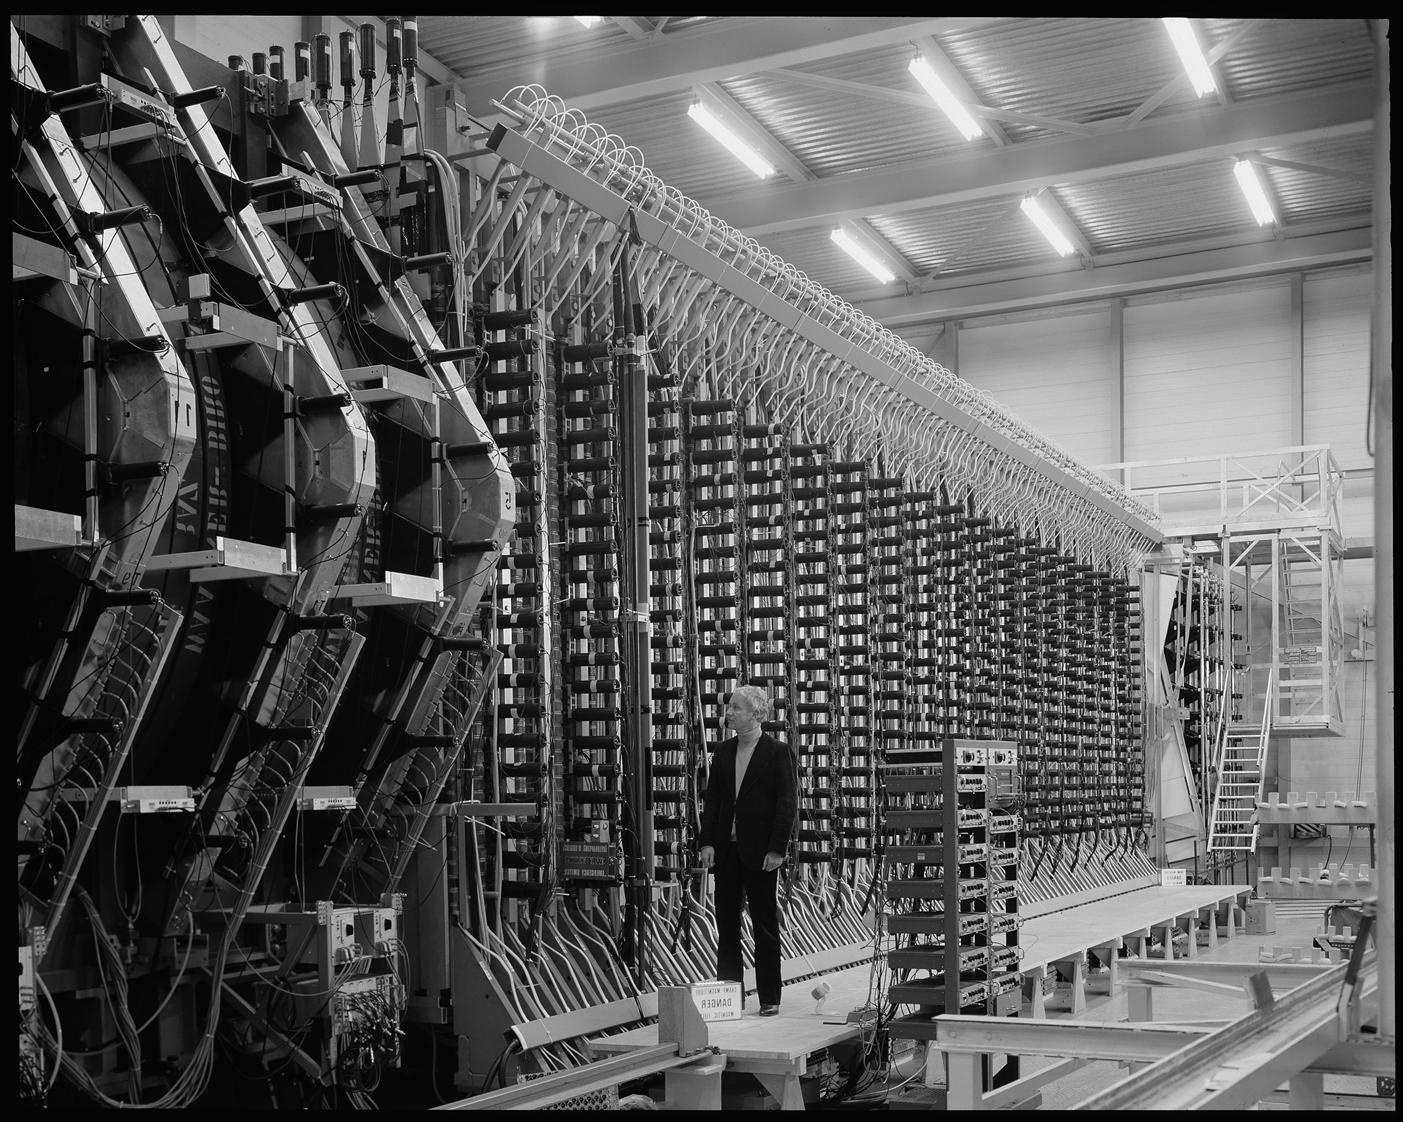 Elusive Neutrinos : the picture shows Klaus Winter, who worked on the 100 tonne CHARM experiment.